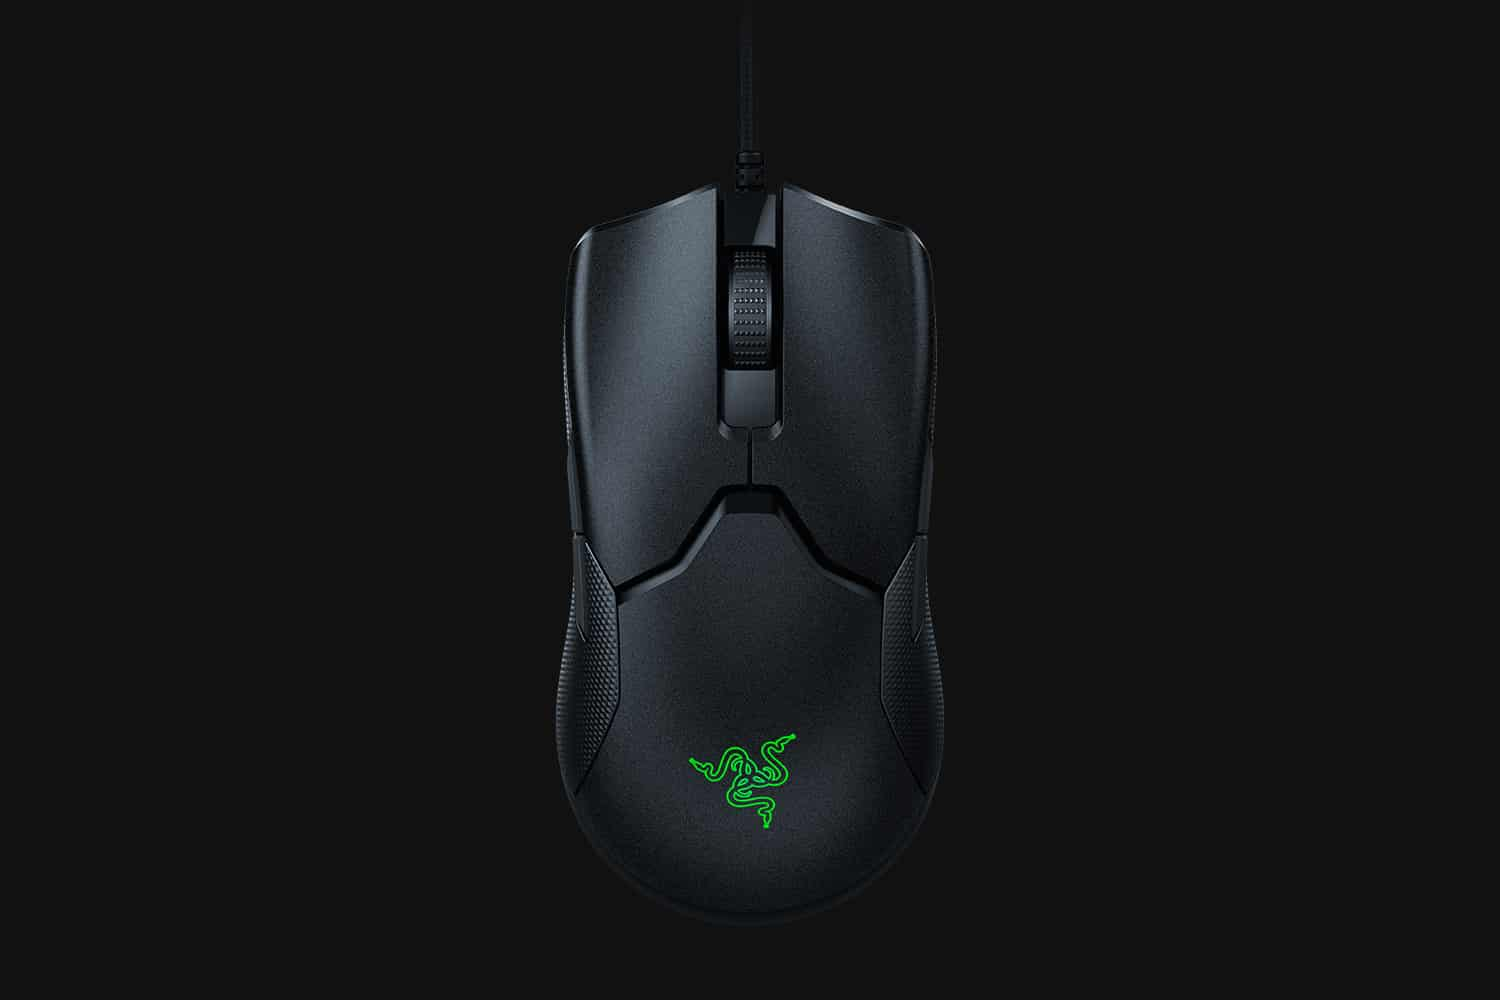 Razer Viper gaming mouse arrives with Optical Switches priced at $79